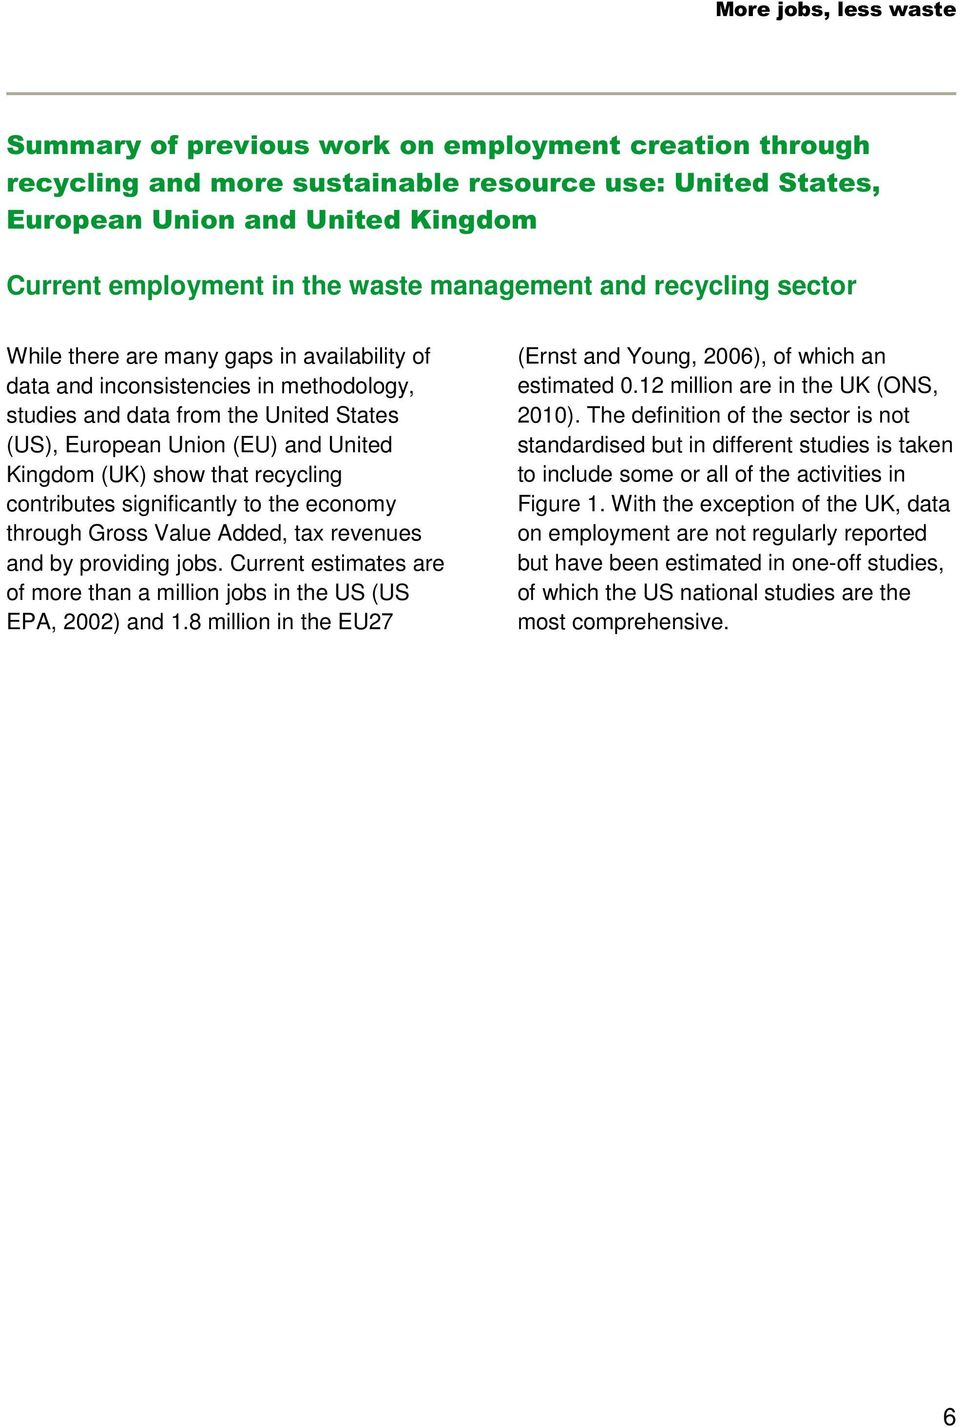 that recycling contributes significantly to the economy through Gross Value Added, tax revenues and by providing jobs. Current estimates are of more than a million jobs in the US (US EPA, 2002) and 1.